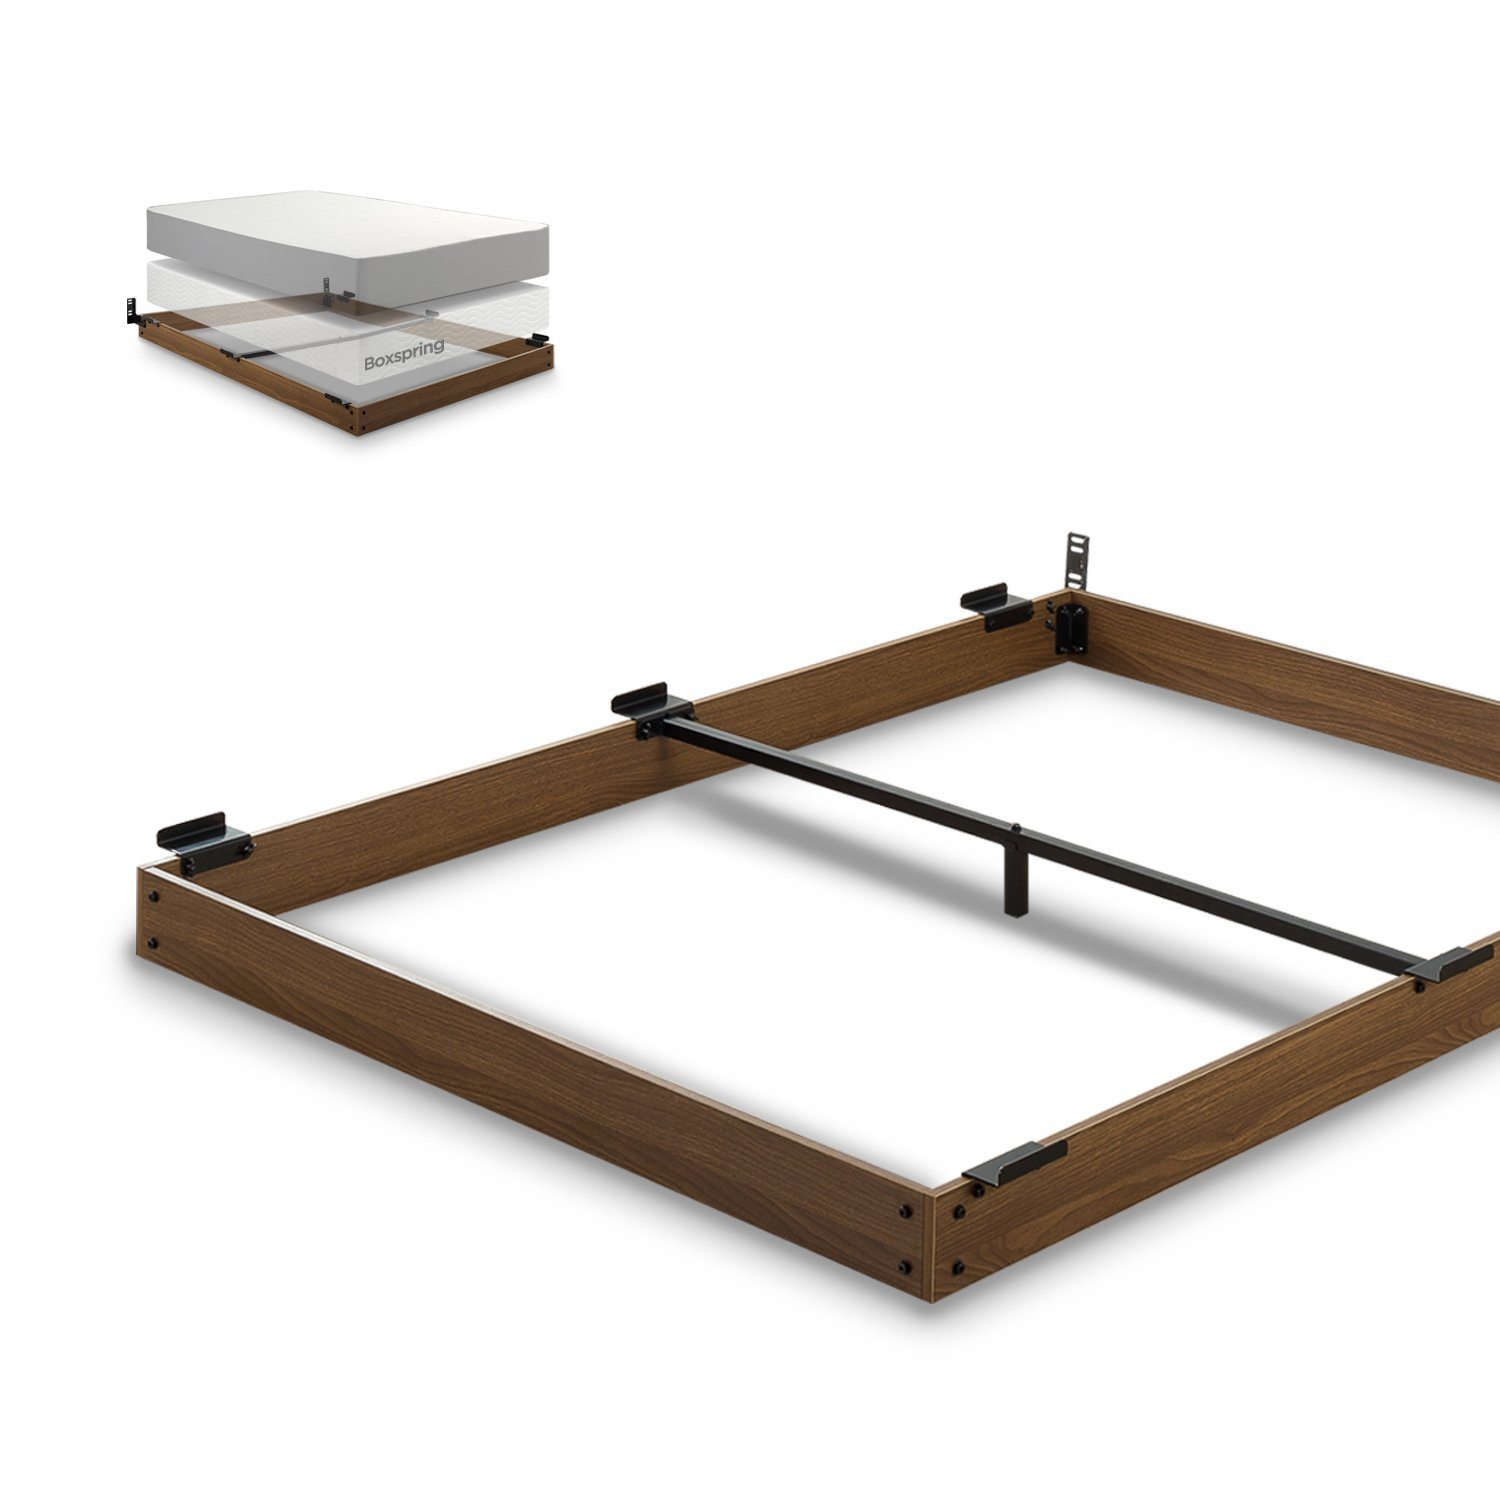 Zinus 5 Inch Wood Bed Frame for Box Spring & Mattress Set / Keep Pets From Beneath Your Bed, Full AZ-WDBF-5F